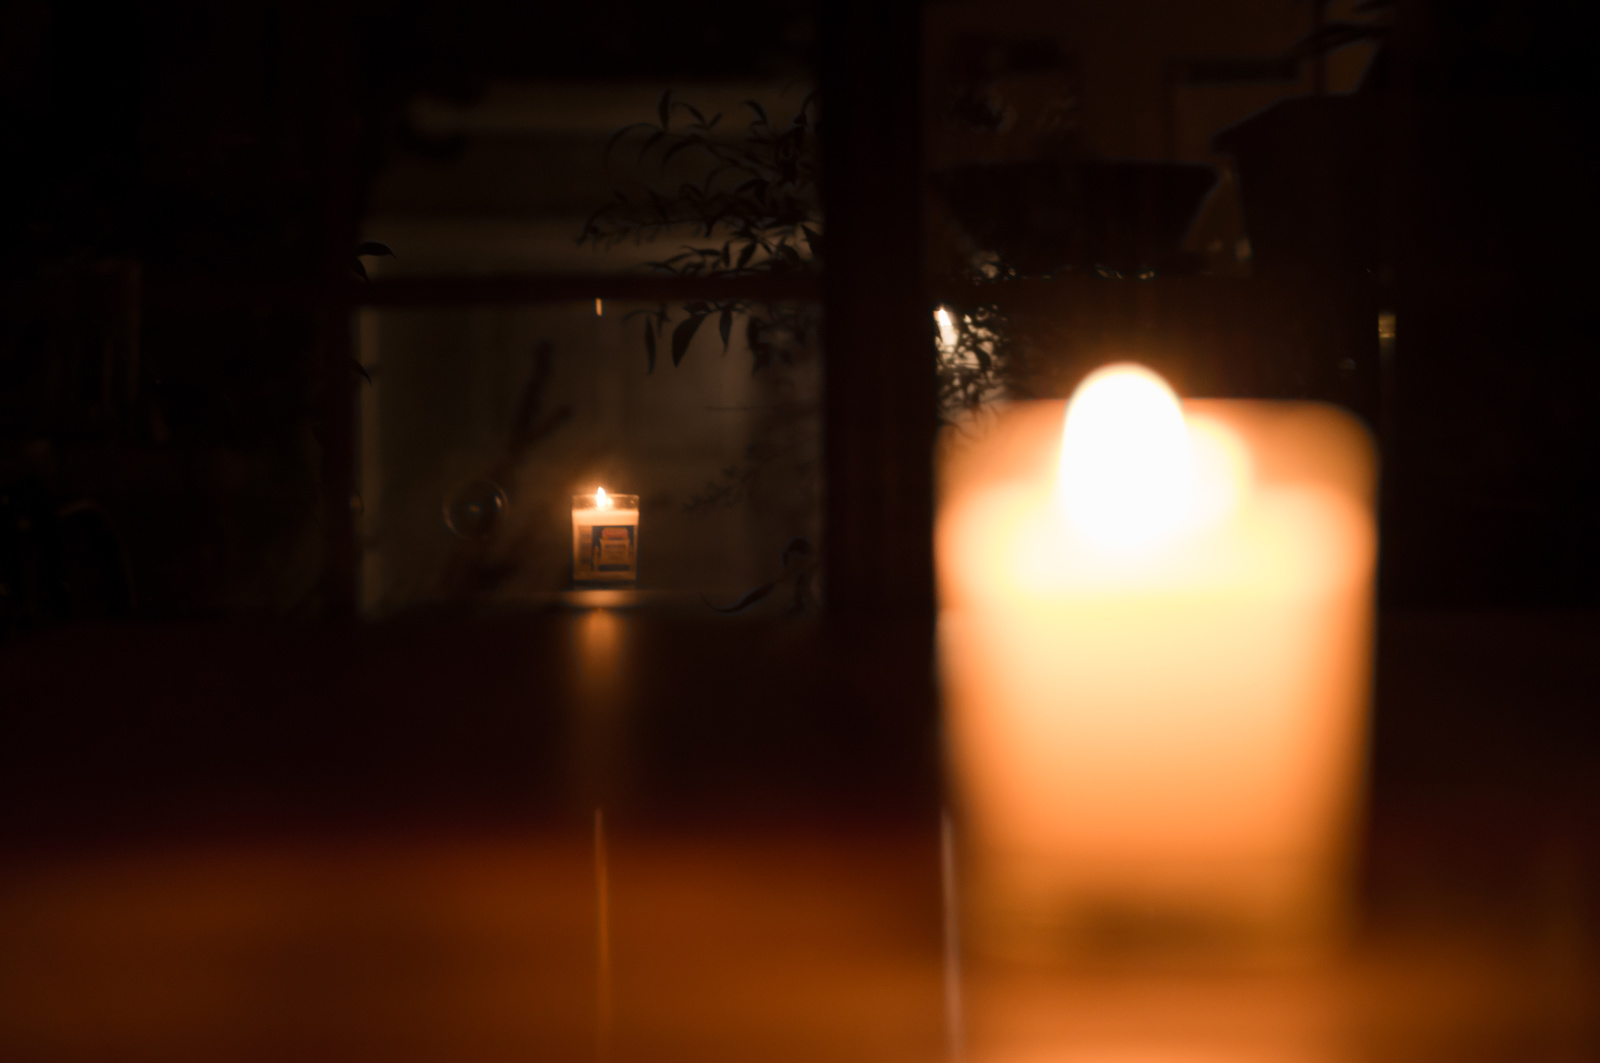 defocused candle in foreground, with reflection of candle in focus in the distance